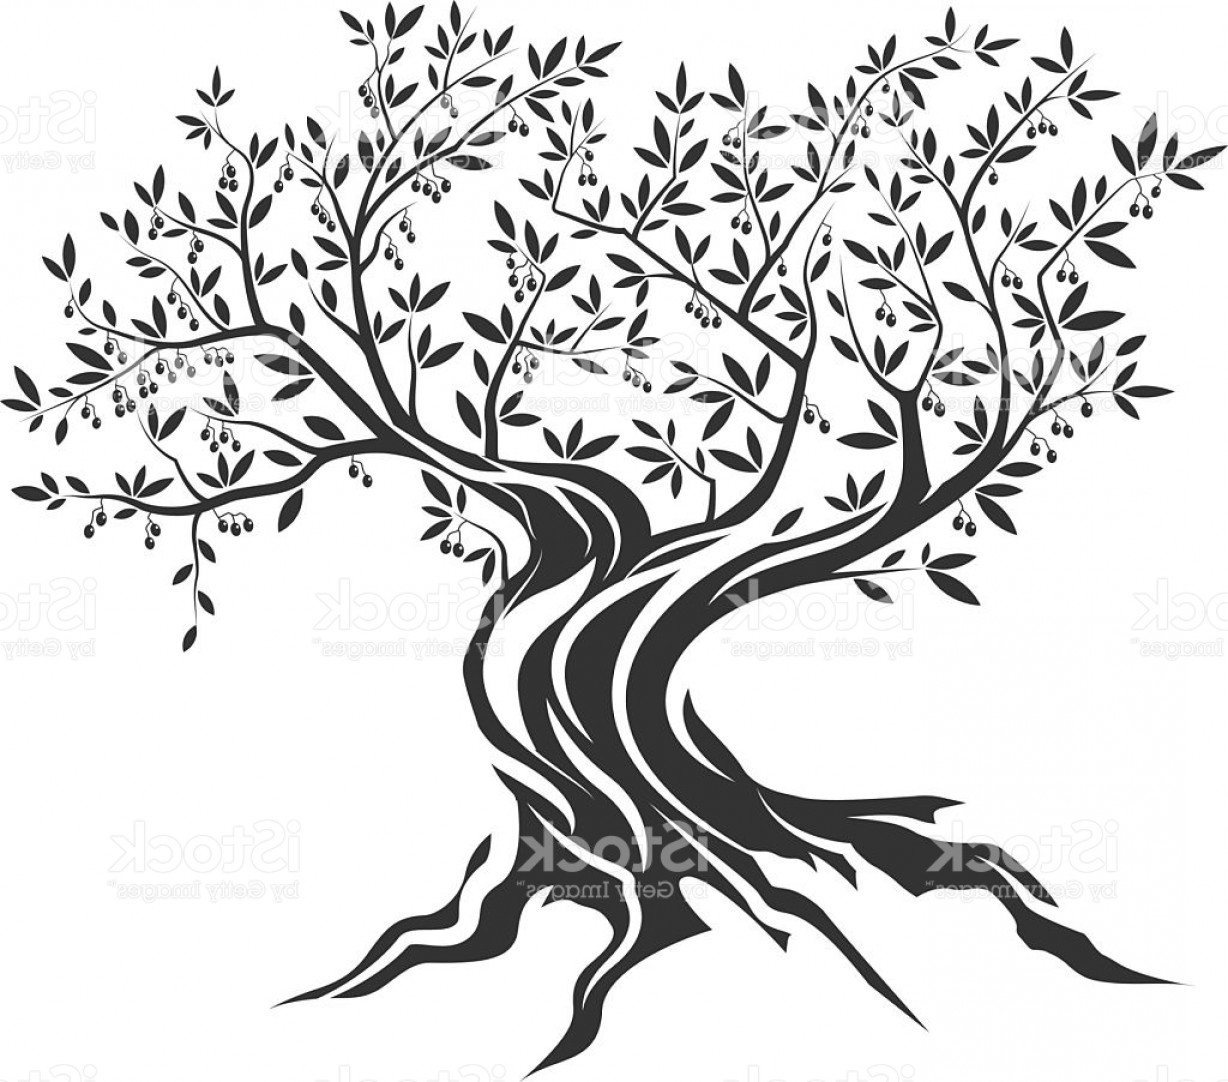 Tree Silhouette Vector Clip Art: Olive Tree Silhouette Icon Isolated Gm